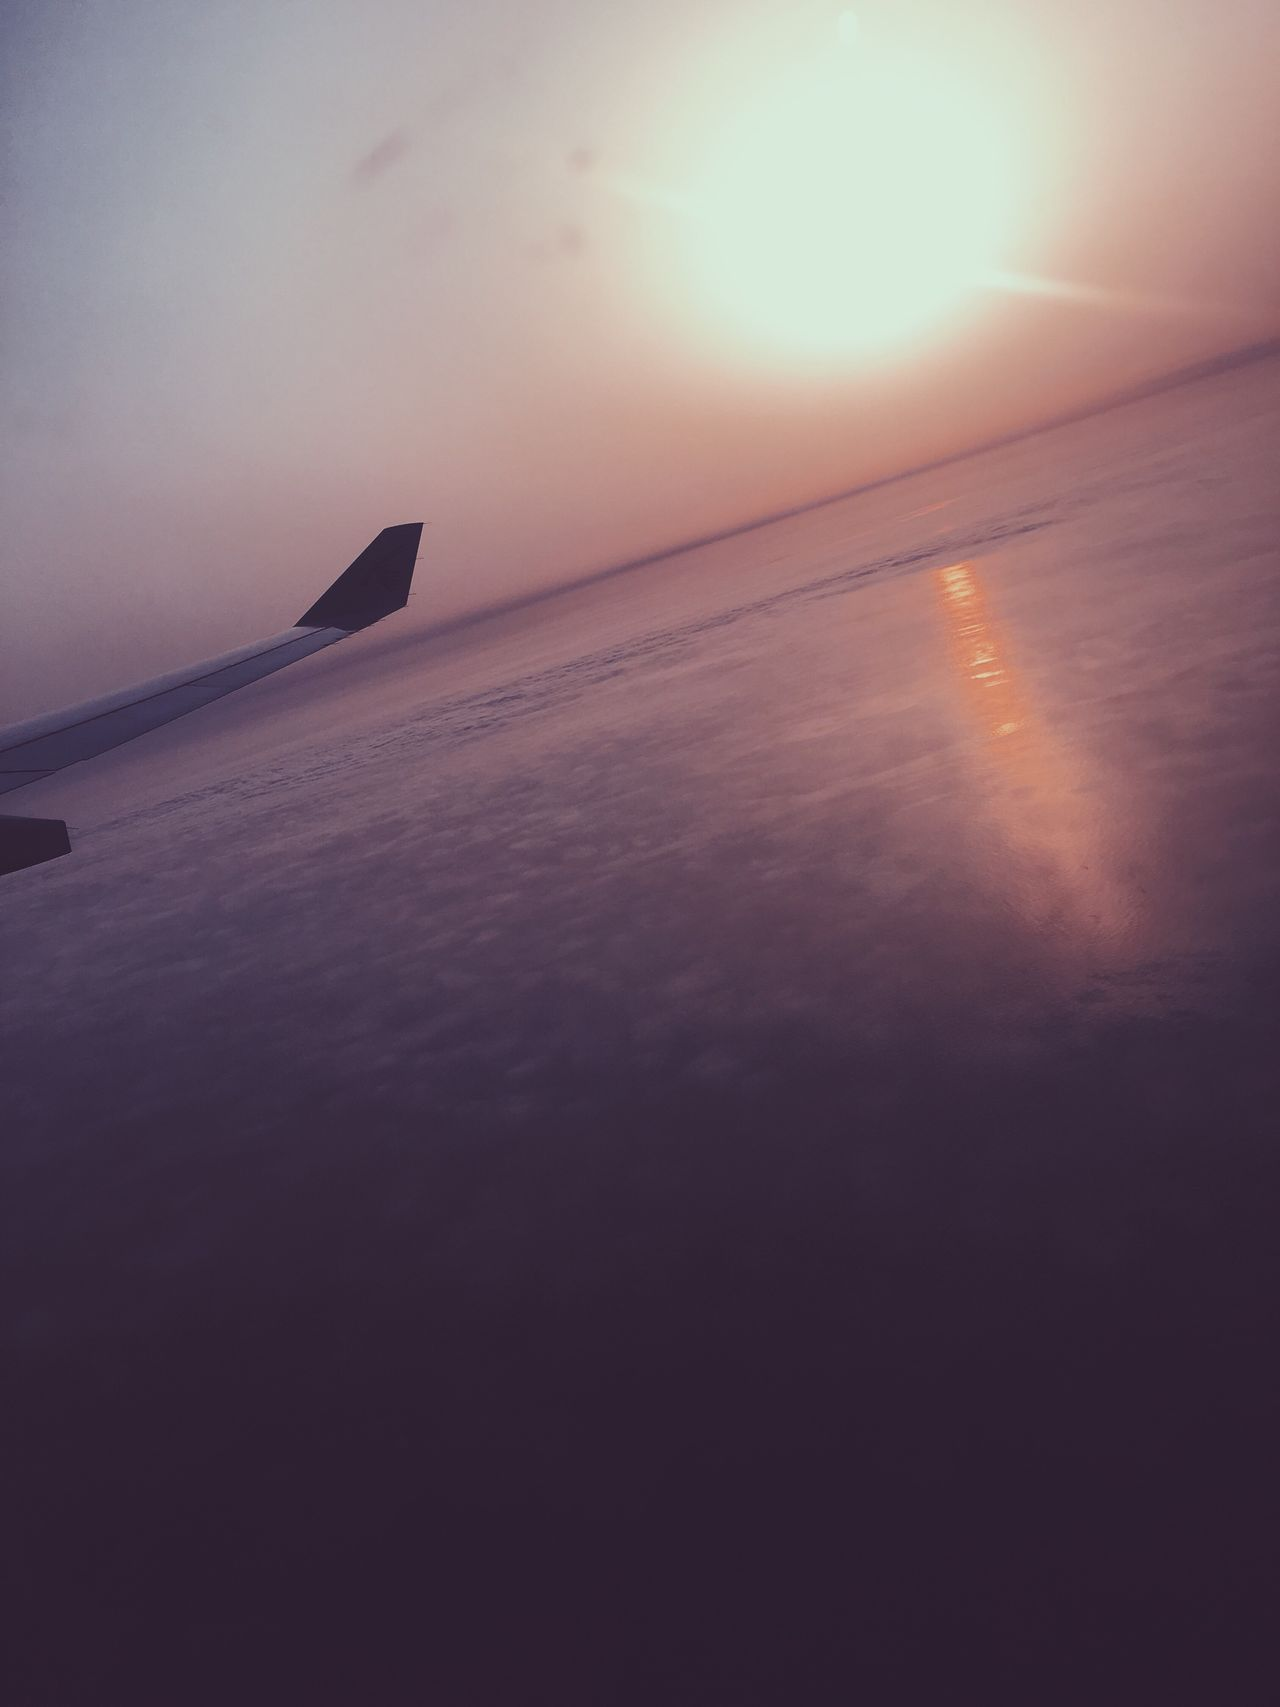 Sunrises as beautifully as the sun sets Airplane Transportation Flying Travel Nature Journey Sunset Sky Airplane Wing Aircraft Wing Beauty In Nature Landscape No People Sun Outdoors Air Vehicle Day